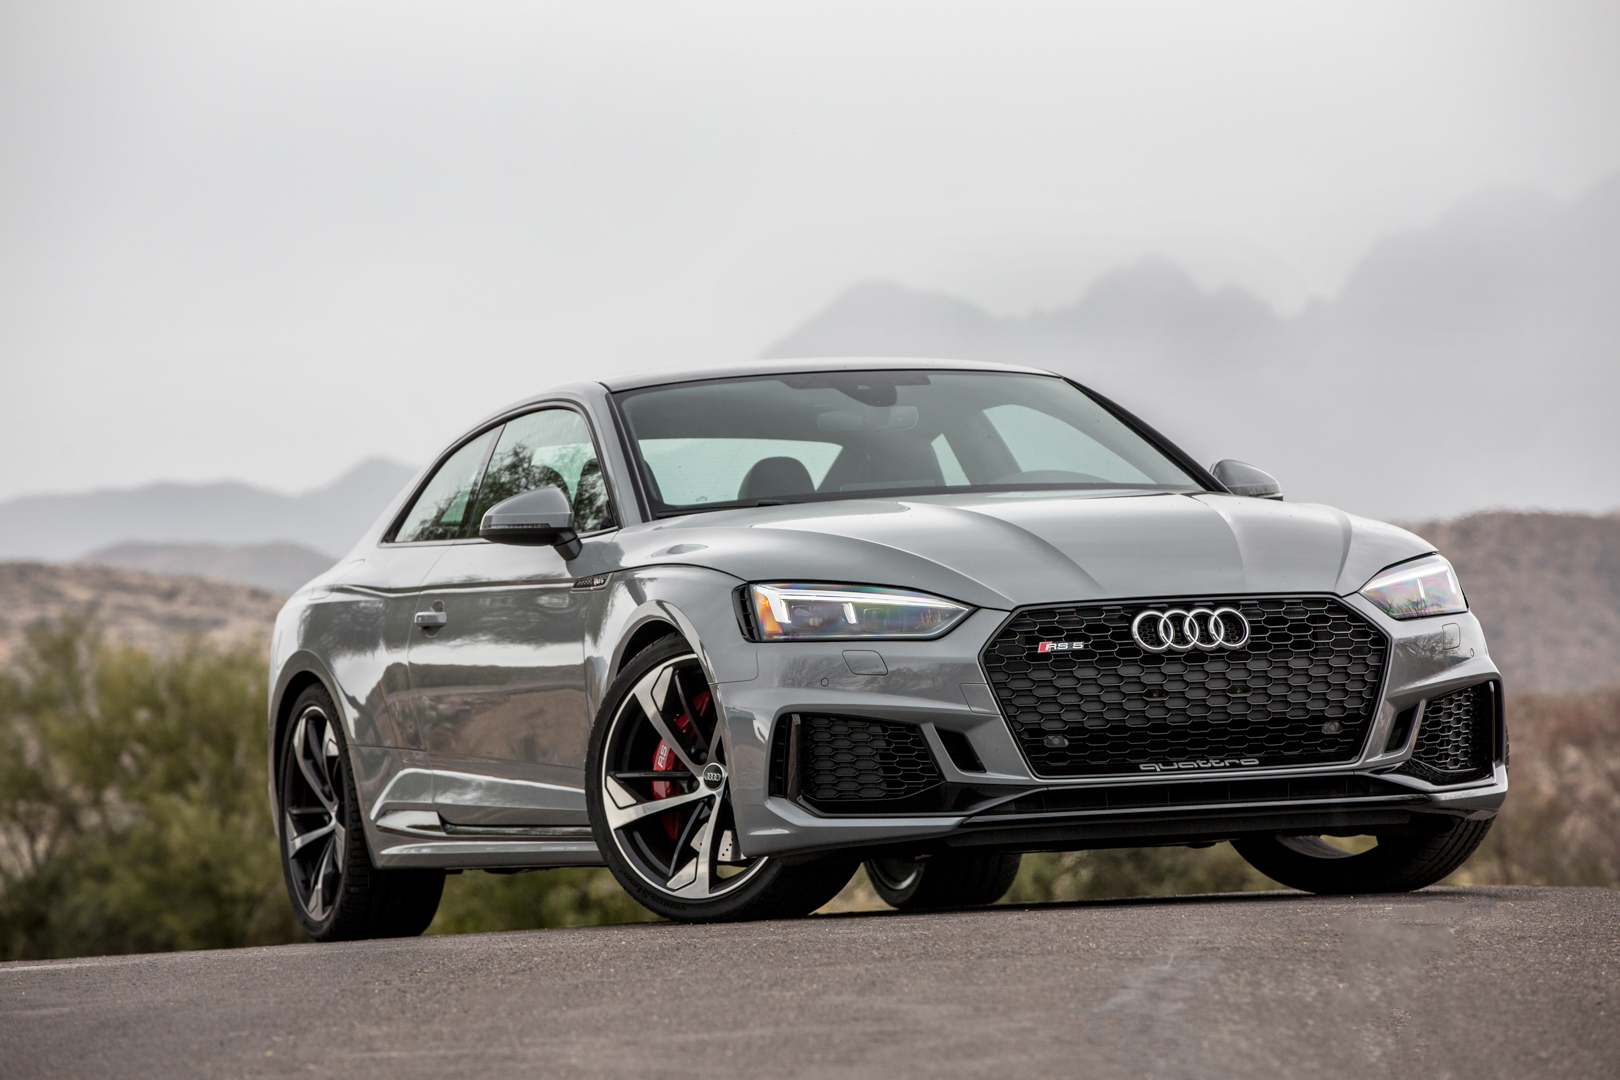 Audi Rs5 Coupe Is Now On Sale In Us Market